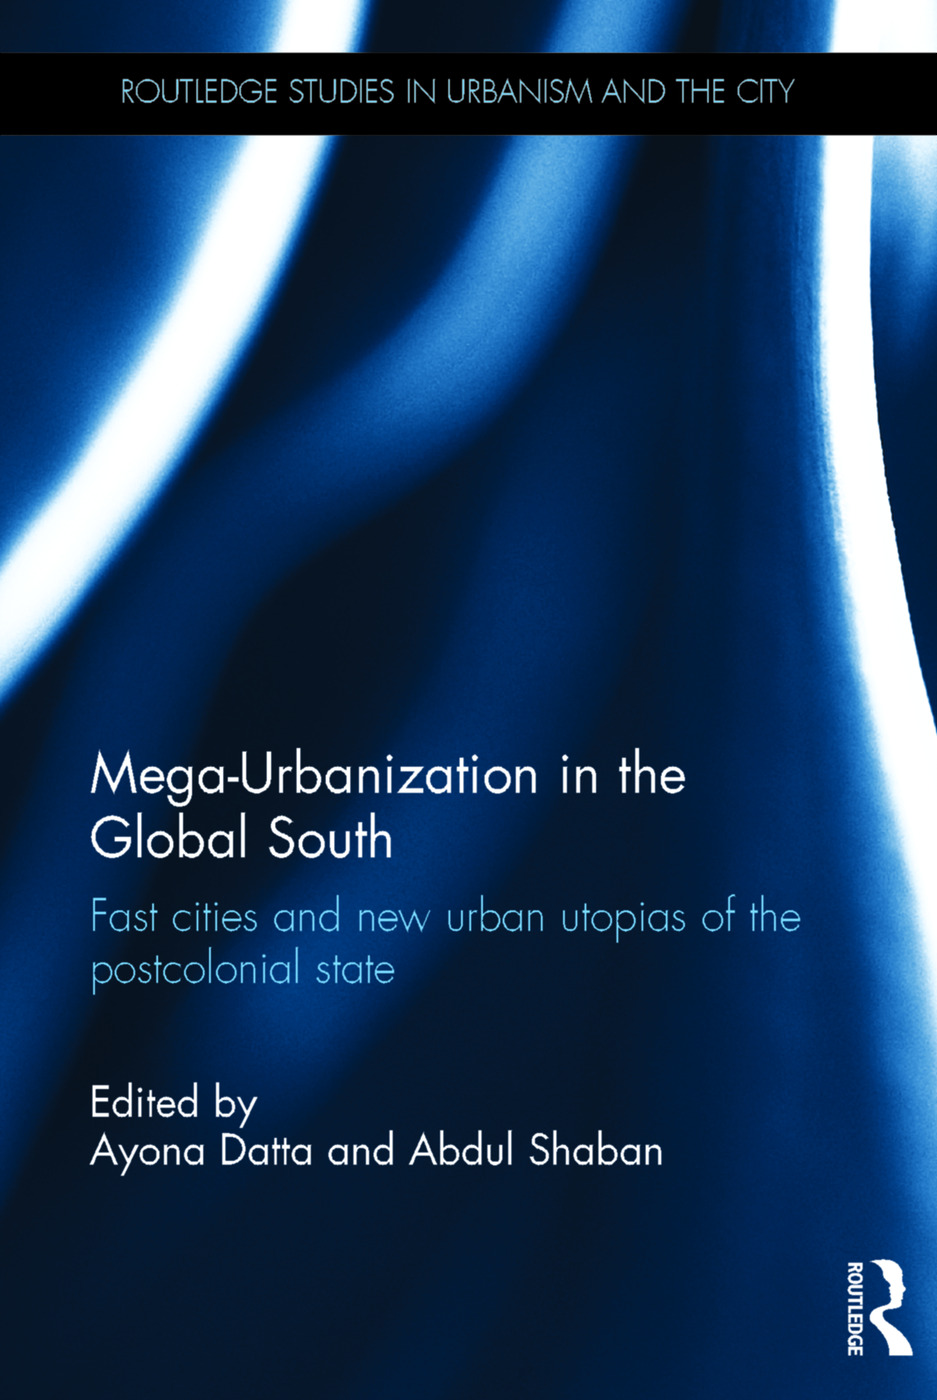 Mega-Urbanization in the Global South: Fast cities and new urban utopias of the postcolonial state book cover